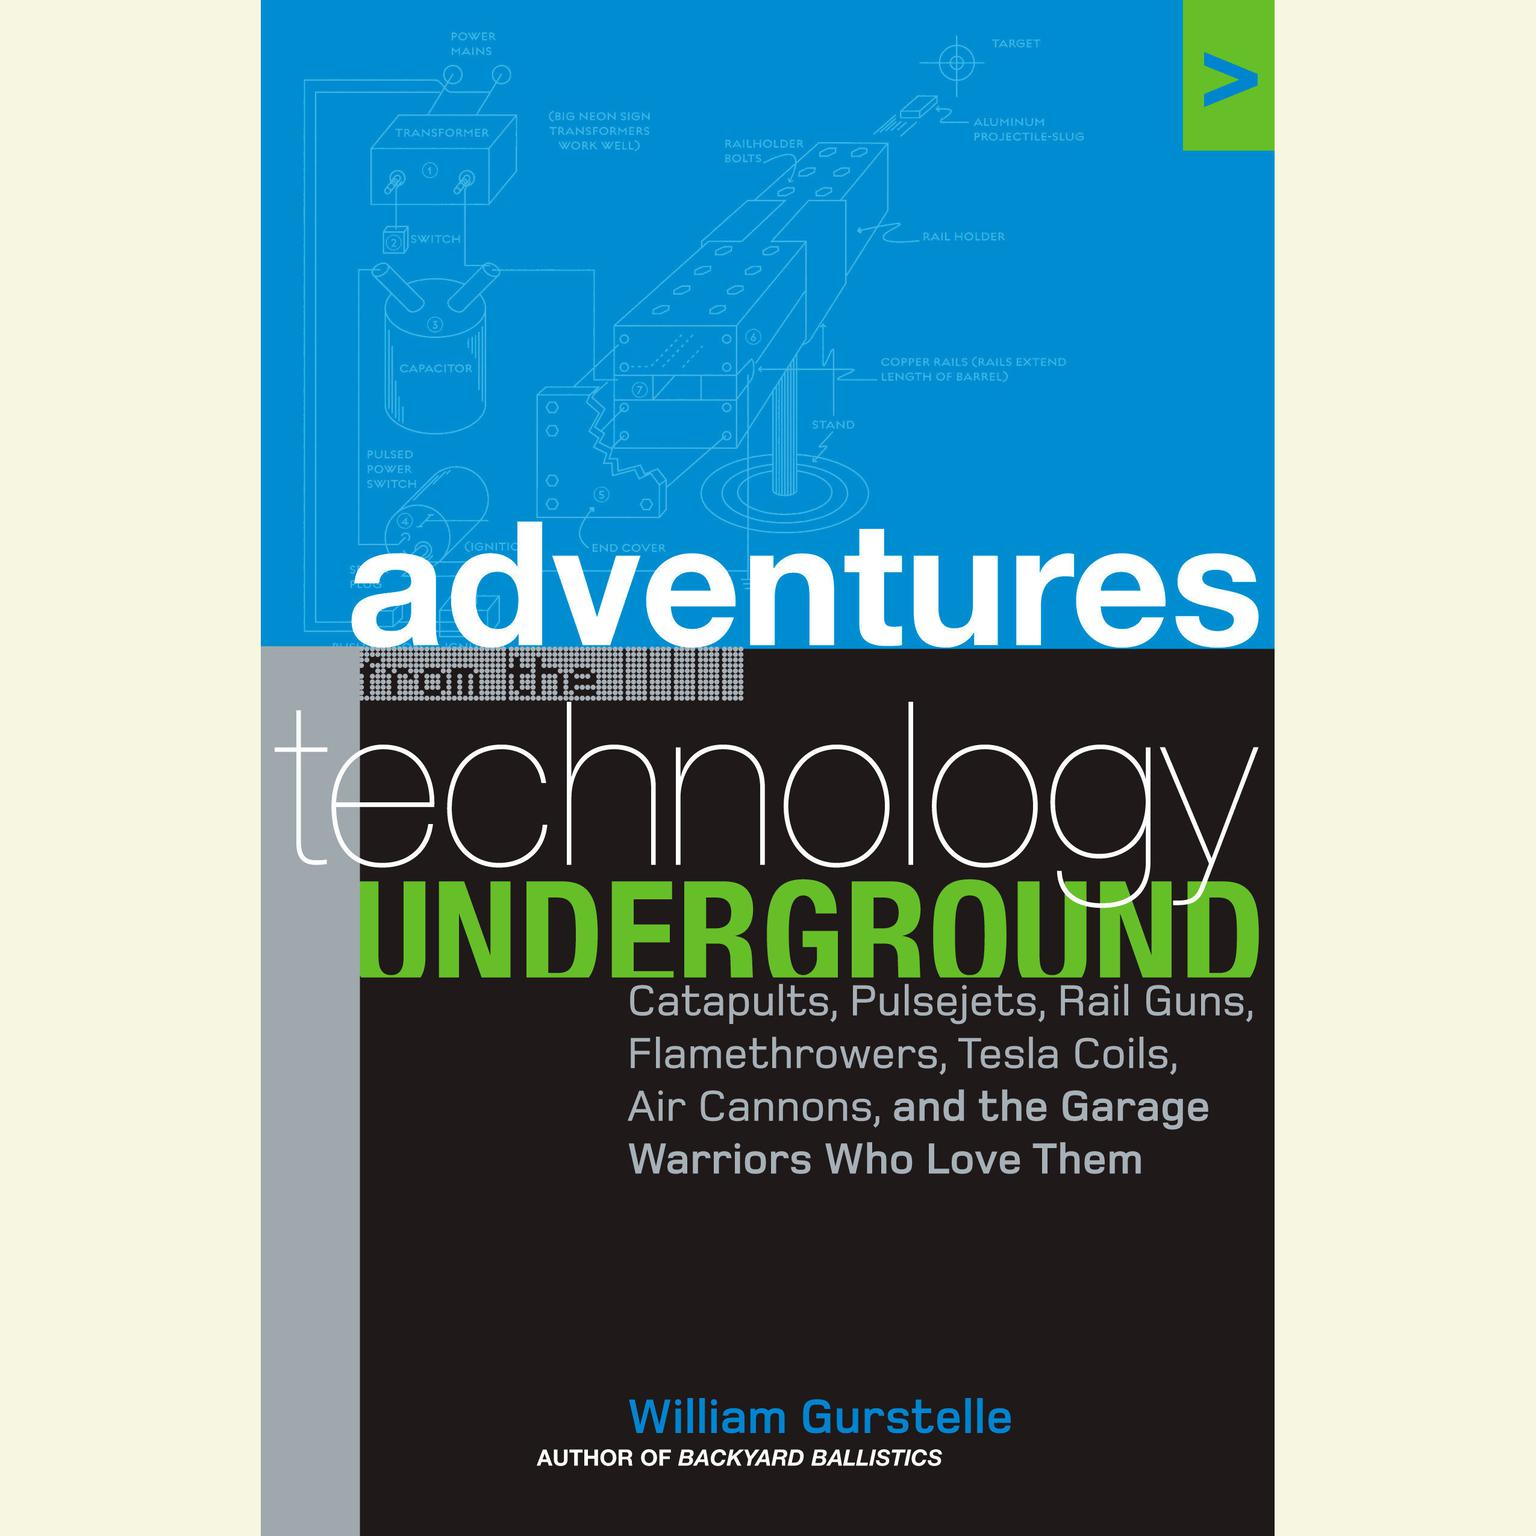 Printable Adventures from the Technology Underground: Catapults, Pulsejets, Rail Guns, Flamethrowers, Tesla Coils, Air Cannons, and the Garage Warriors Who Love Them Audiobook Cover Art